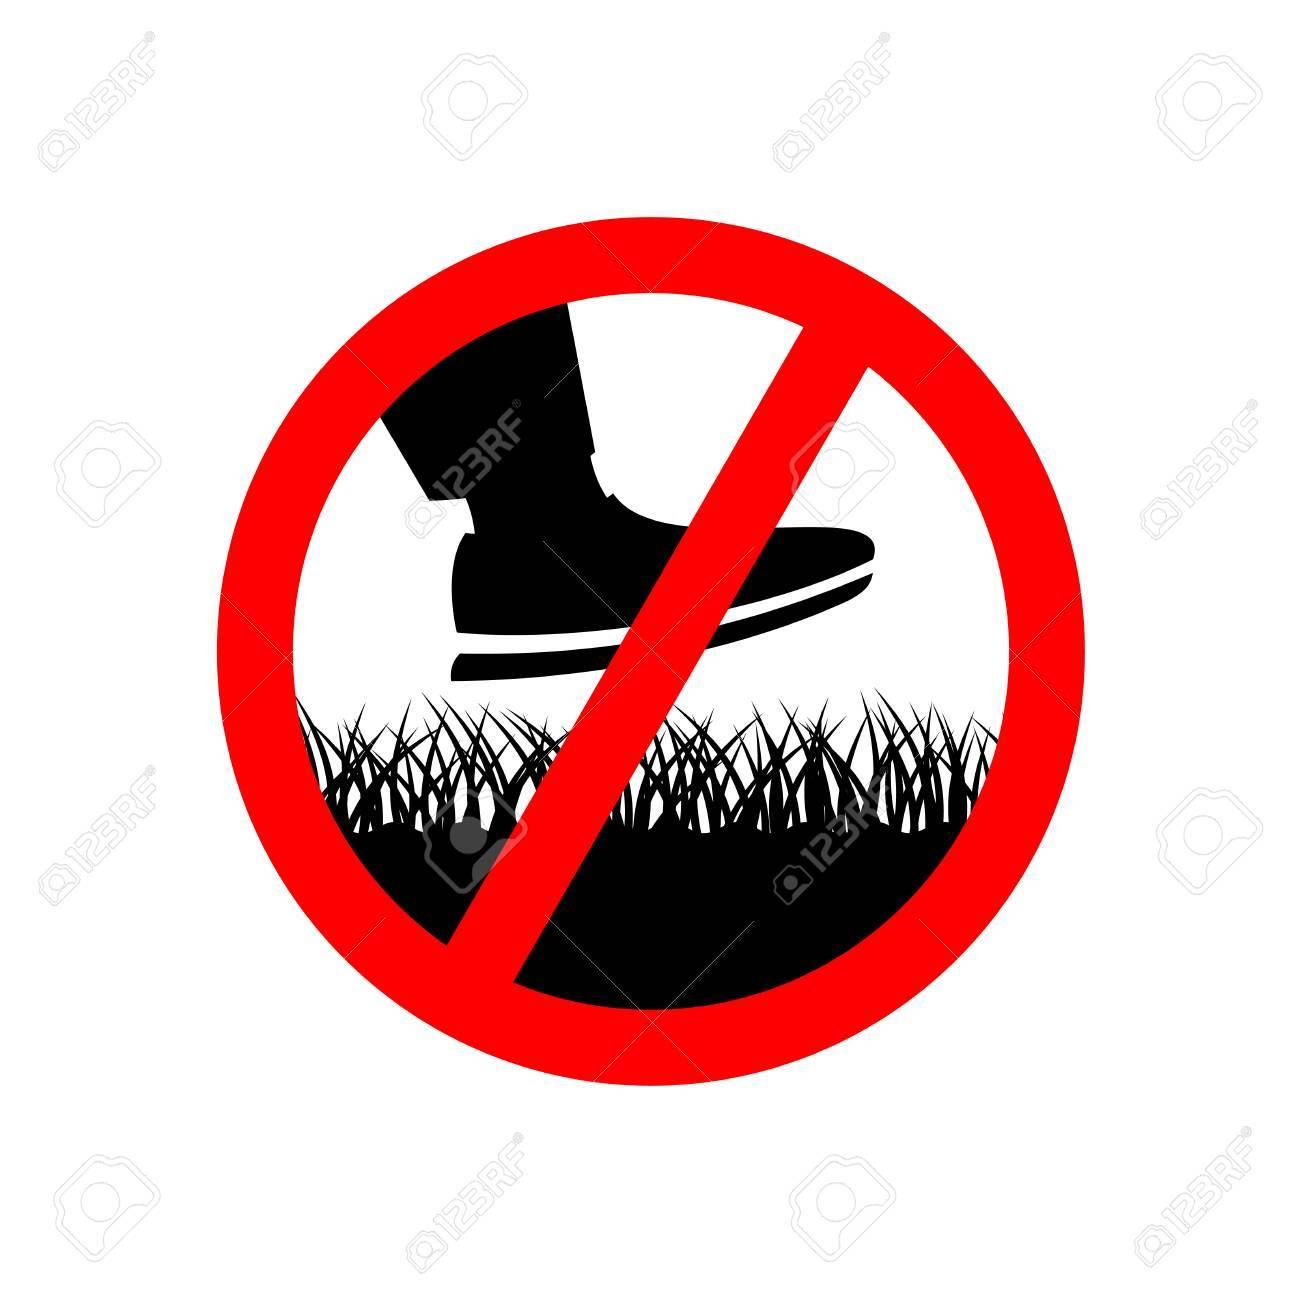 hight resolution of no step on the lawn grass prohibition sign keep off the grass symbol stock